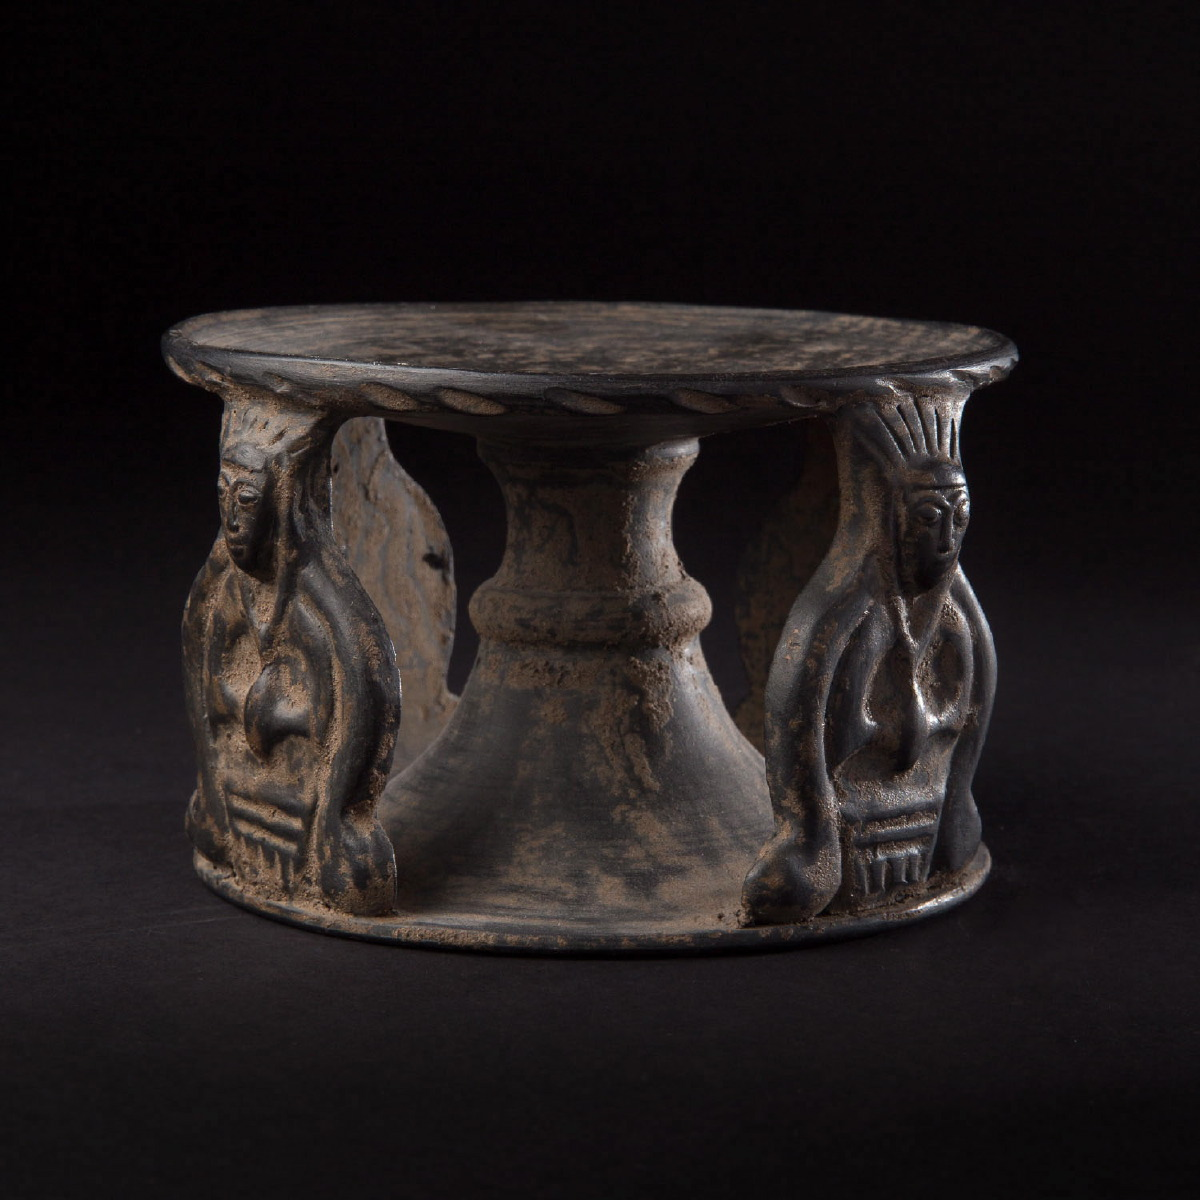 Photo of etruscan-bucchero-pedestal-galerie-golconda